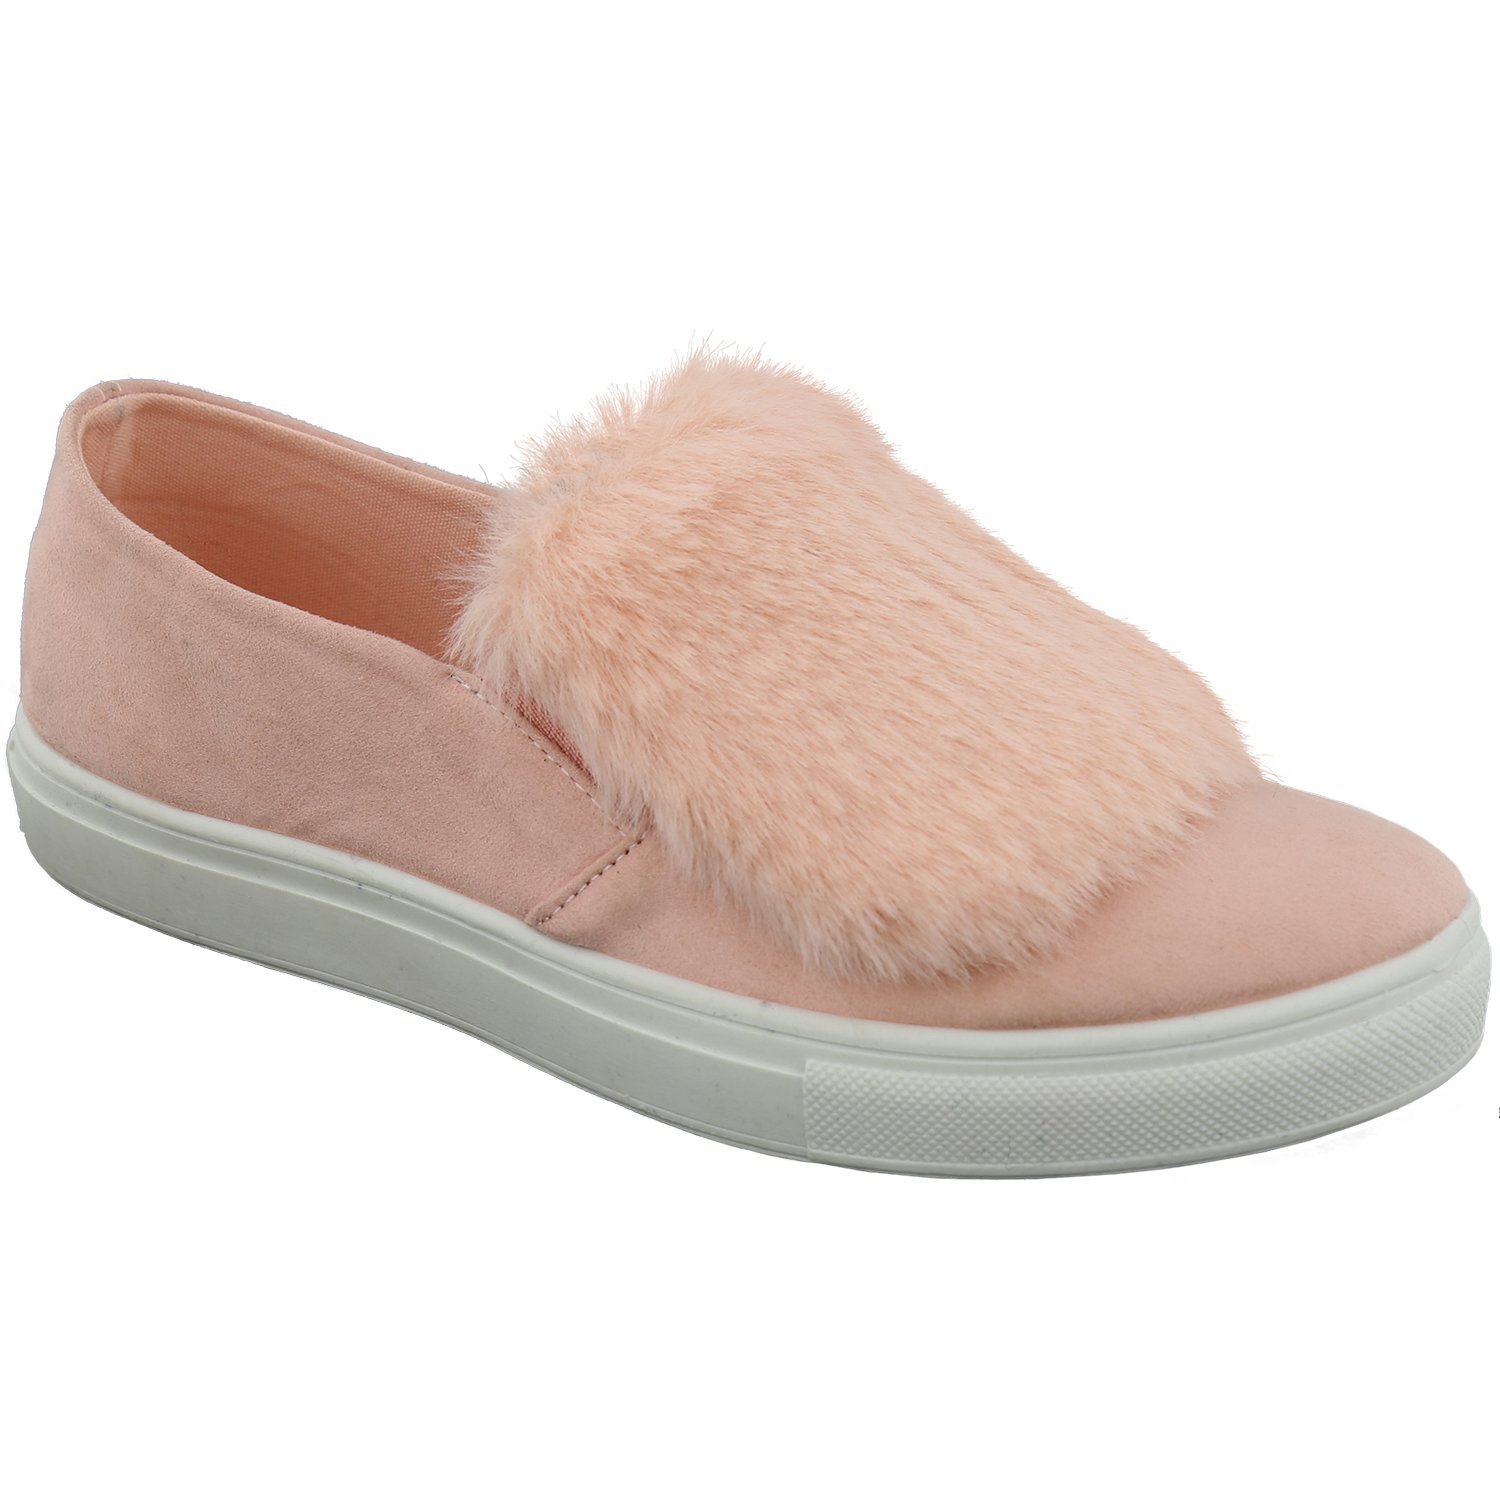 TravelNut Back to School Sale Kenna Classic Slip On Casual Skateboard Sneakers for Women (Assorted Colors) B073P487KM 7 M US|Marianne Pink